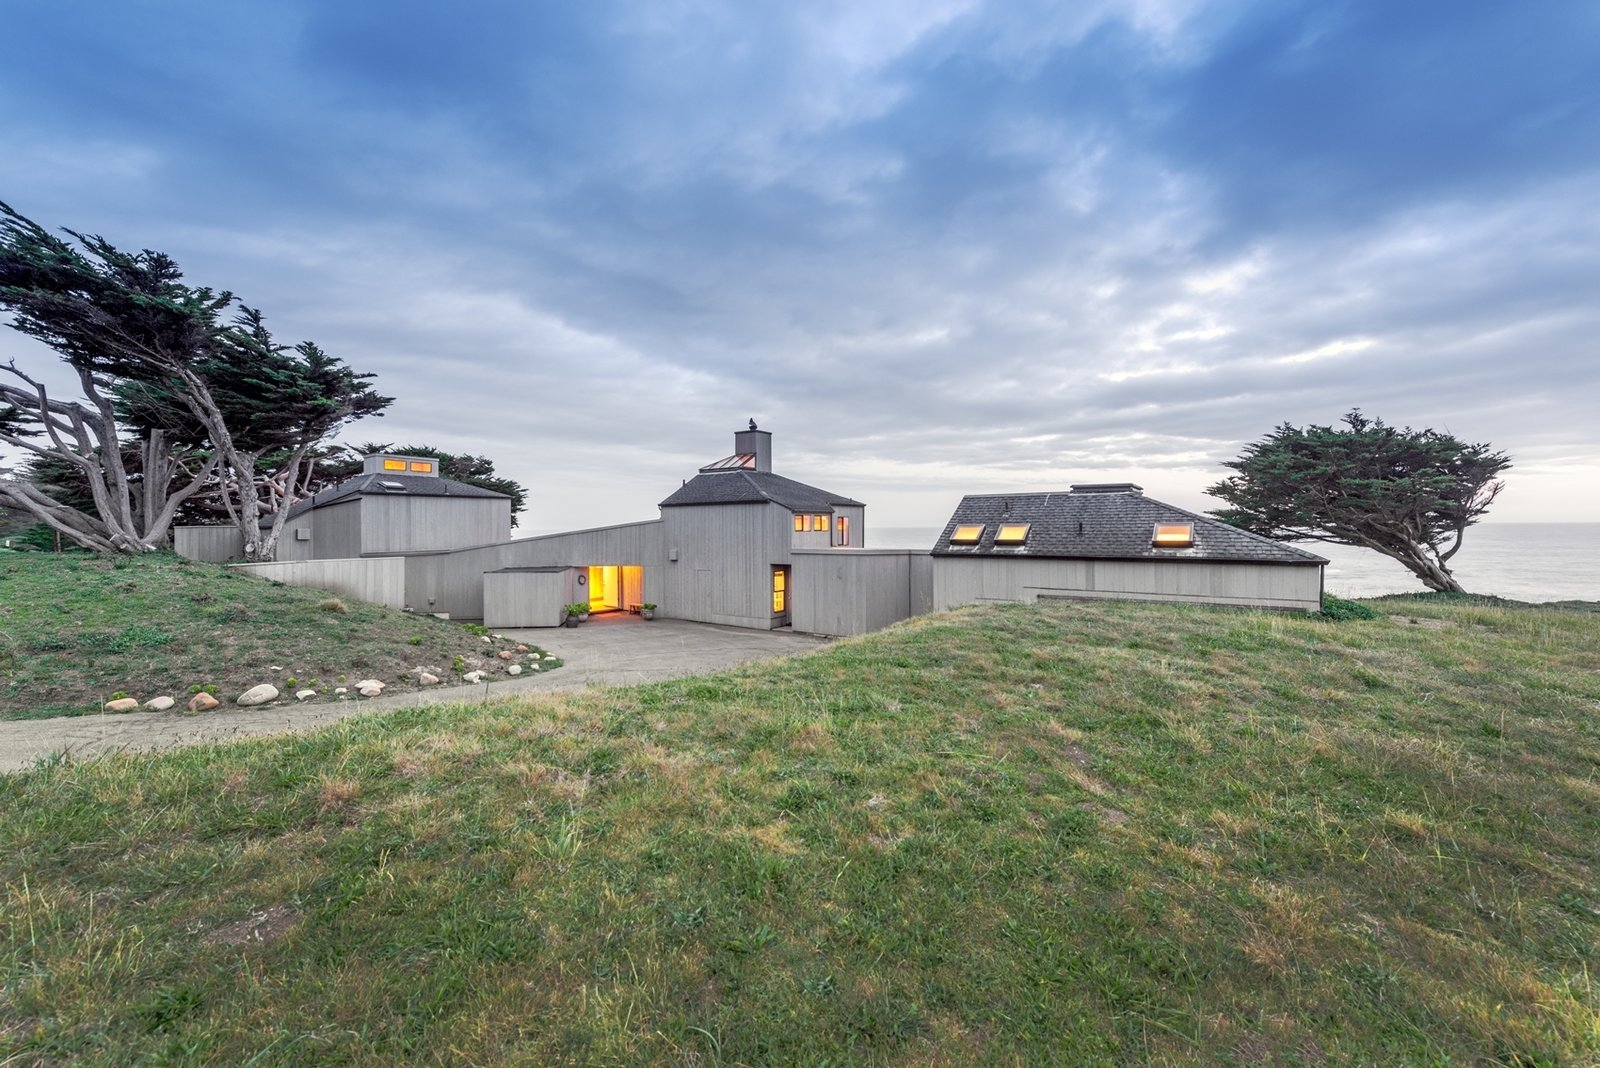 Photo 1 of 12 in Settle in the Celebrated Sea Ranch For Under $2.9M